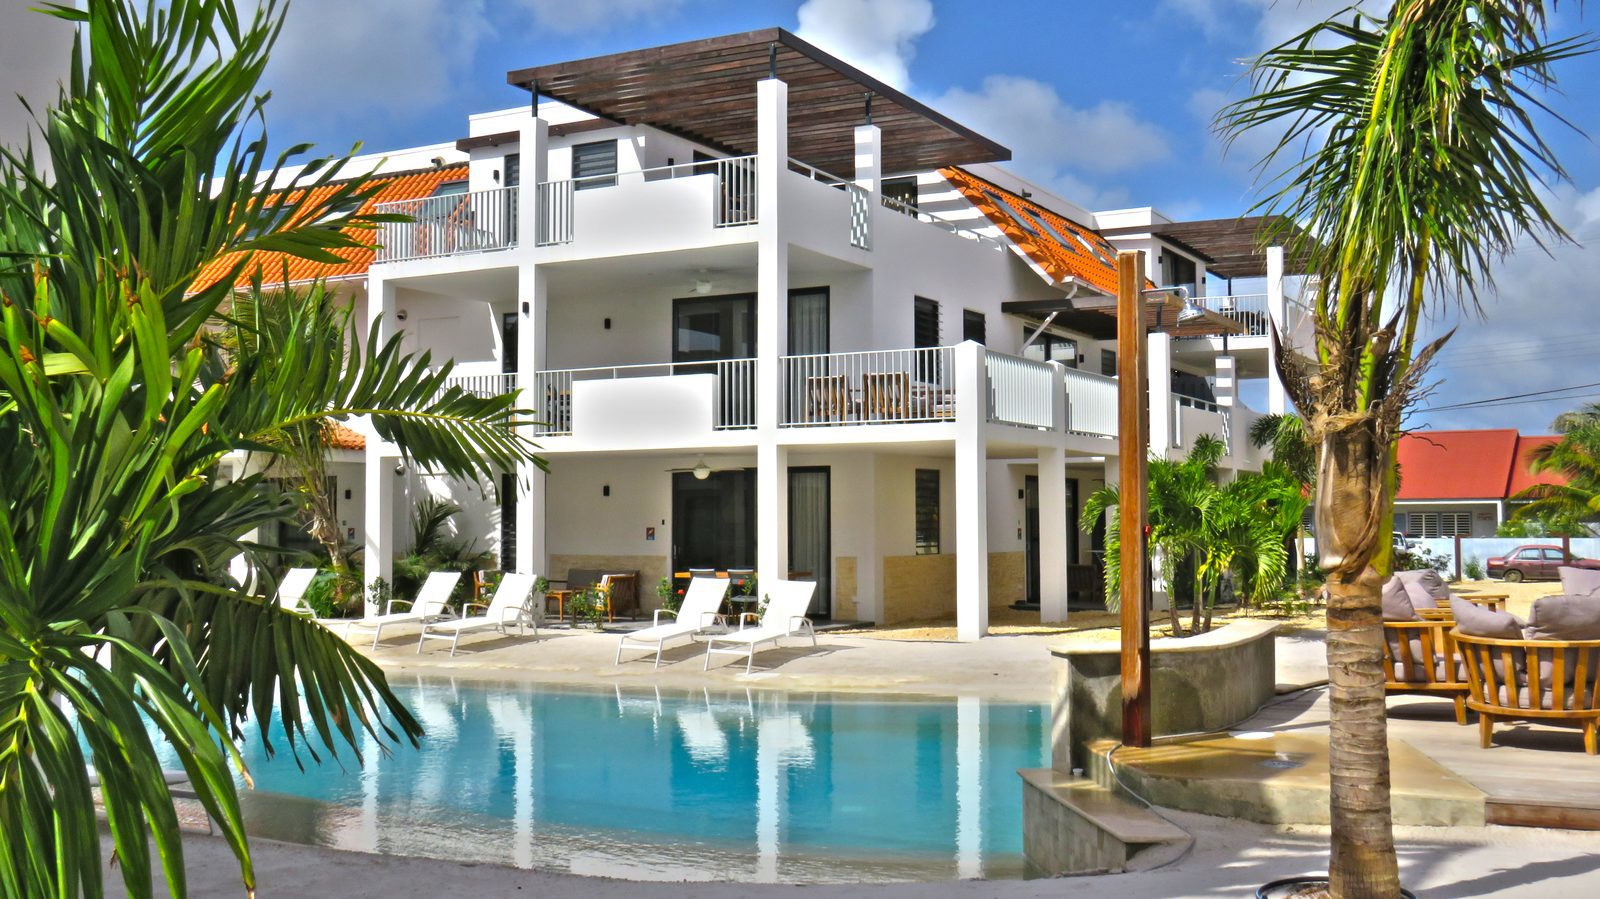 Staying on Bonaire? That is possible at Resort Bonaire! We have several apartments that are luxurious and have everything you need.